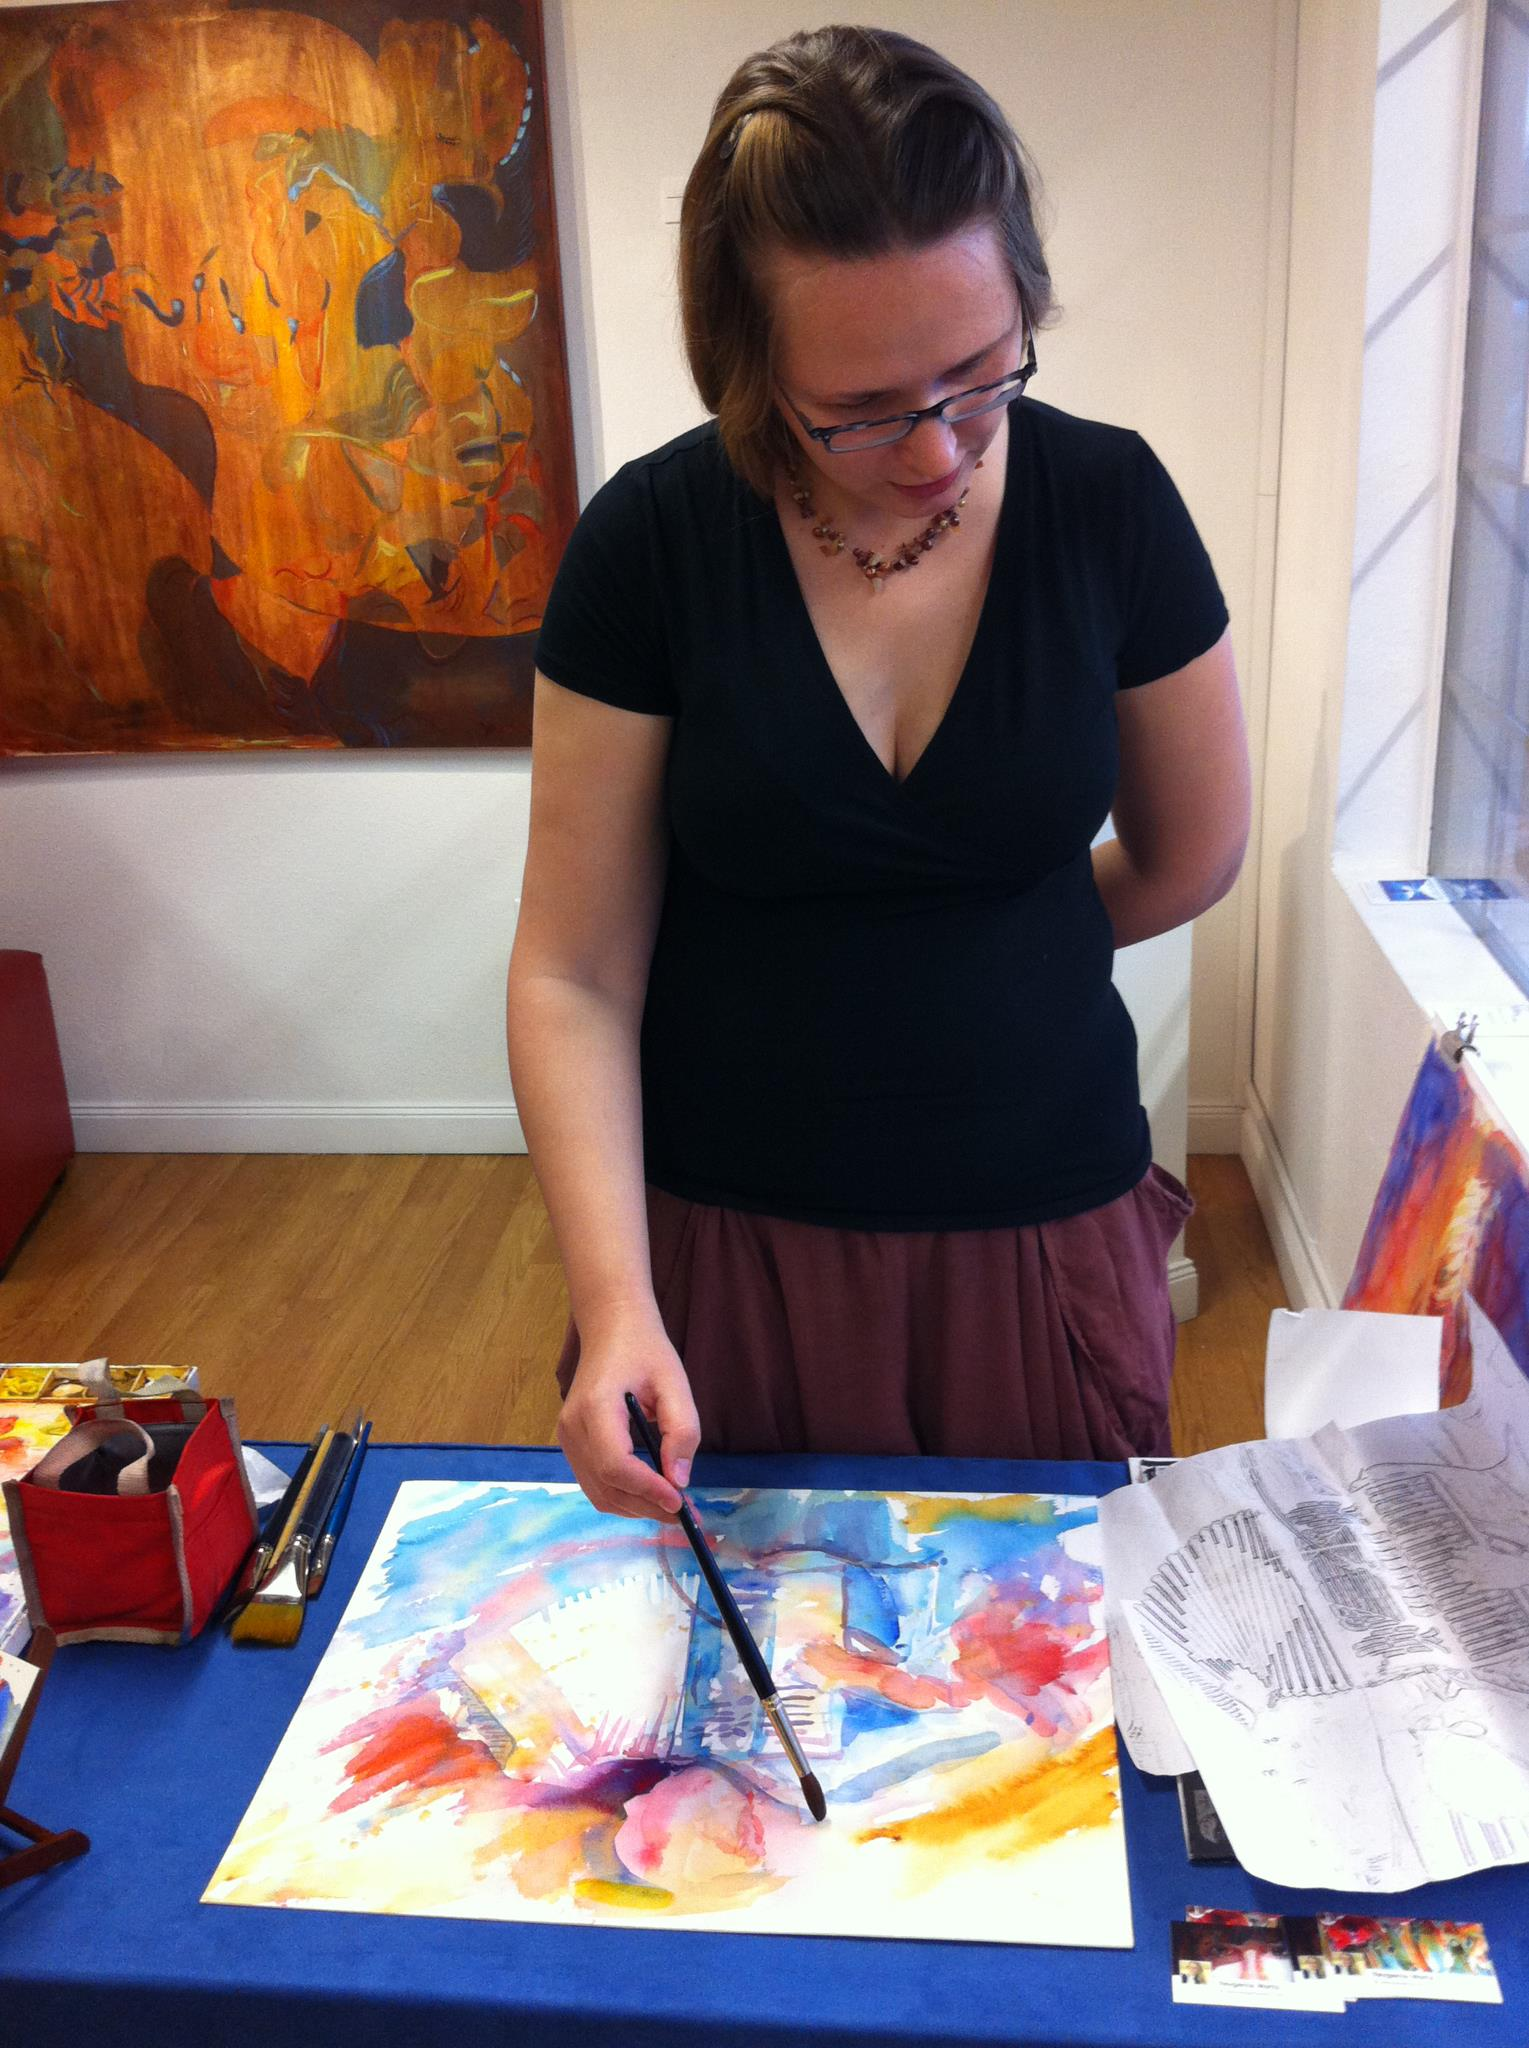 genia painting at eclipse.jpg